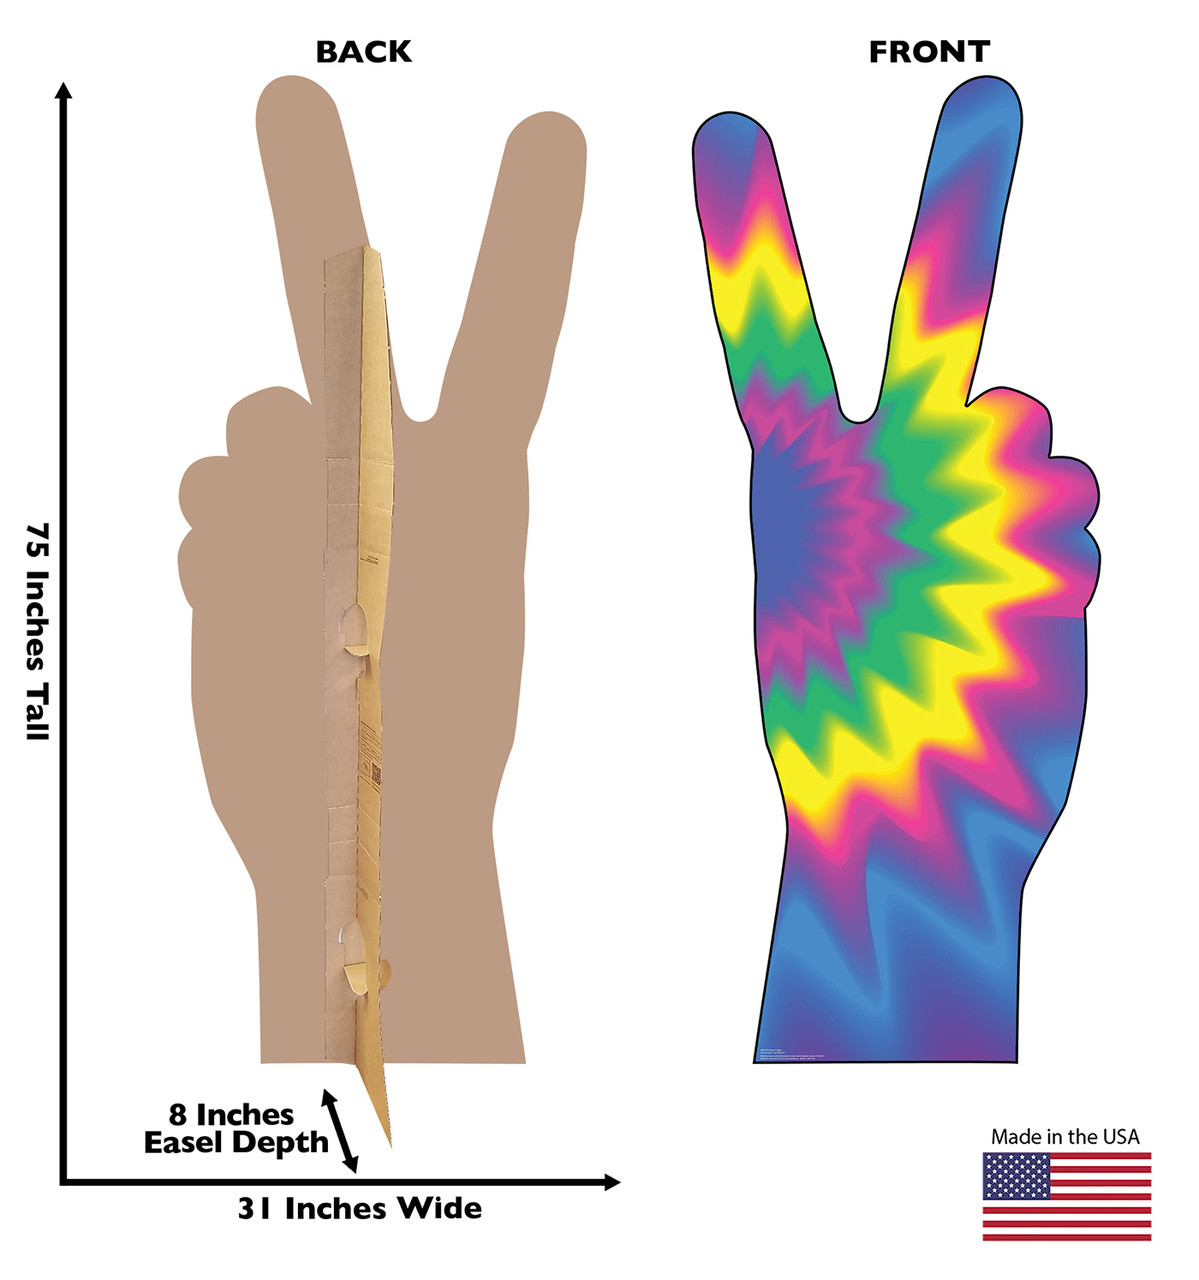 Life-size cardboard standee of 70's Peace Fingers with back and front dimensions.